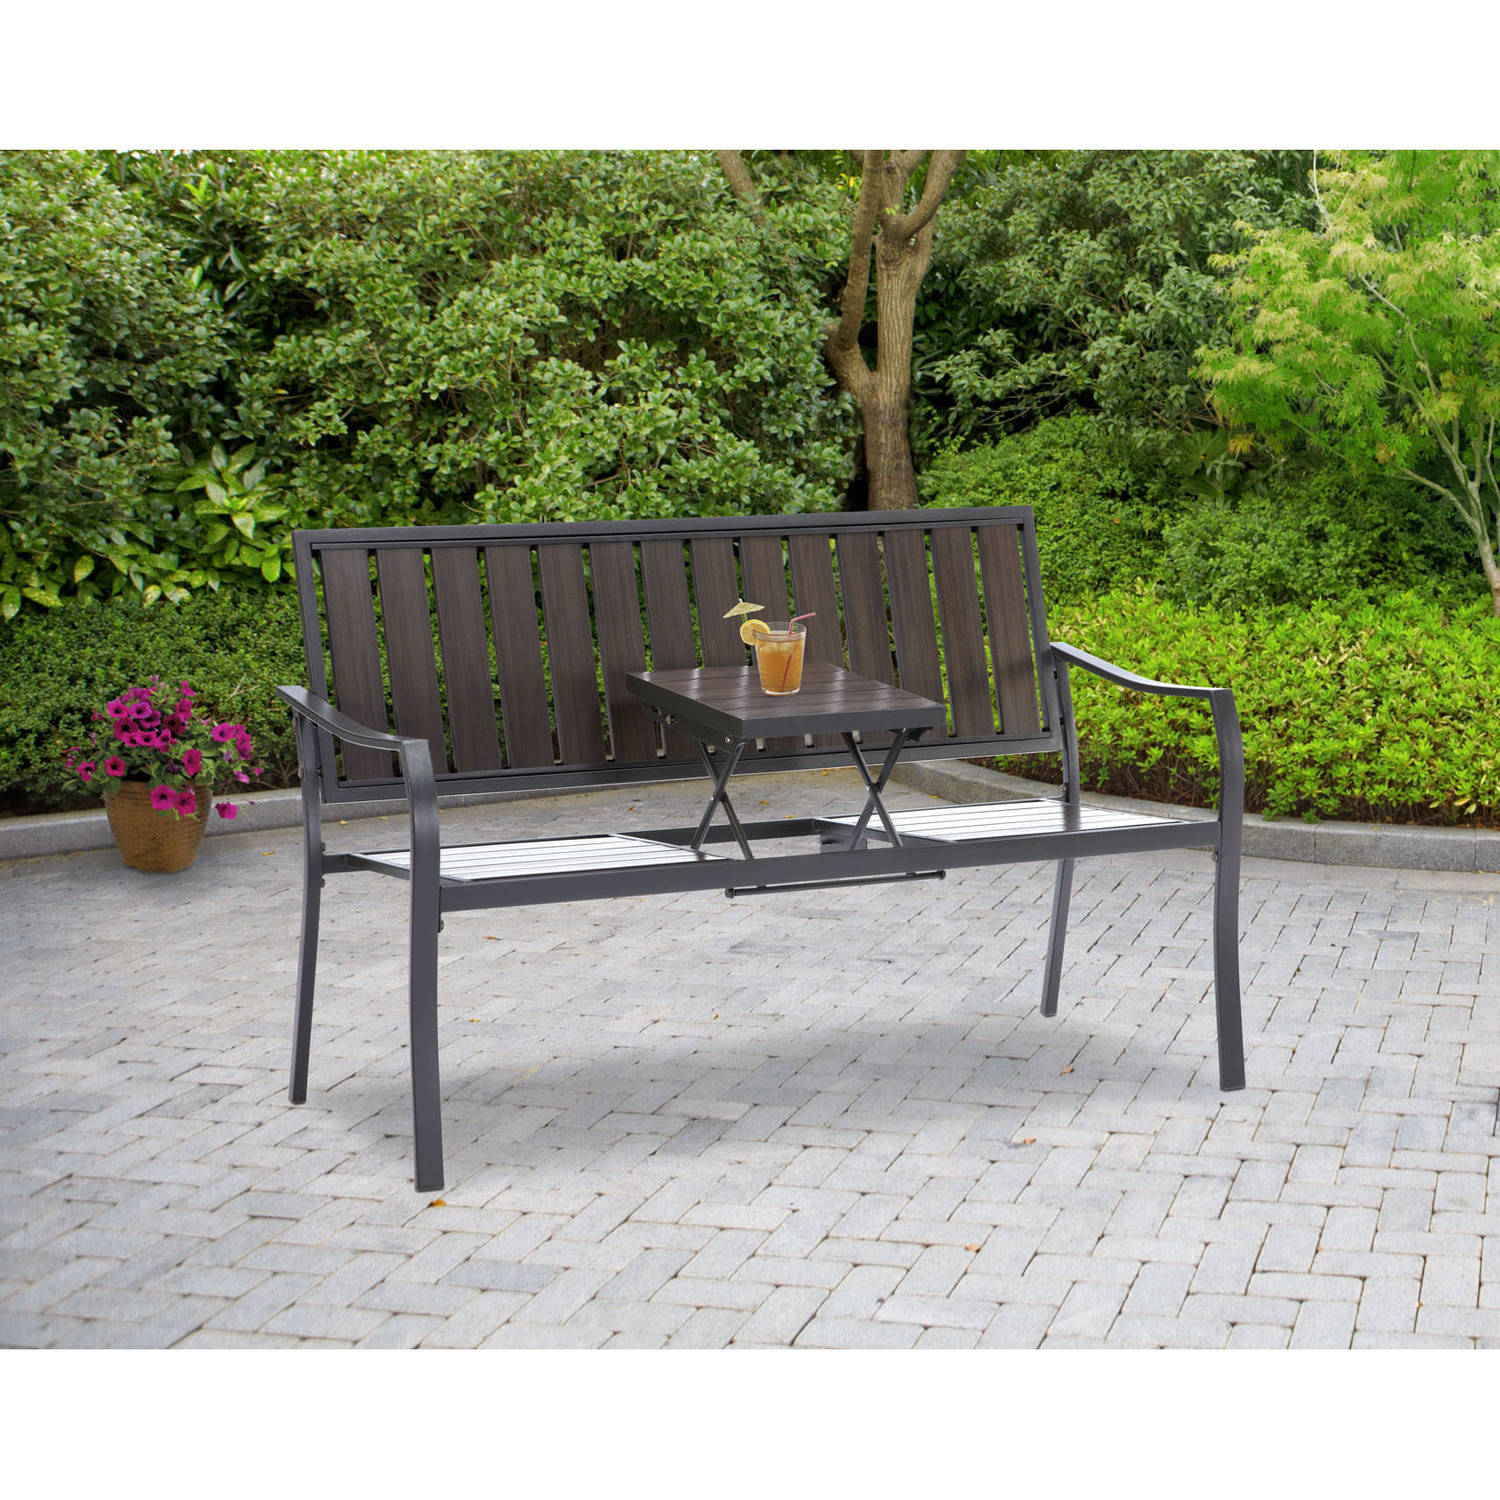 Garden Furniture Table Bench Seat mainstays endurowood pop-up bench, seats 2 - walmart